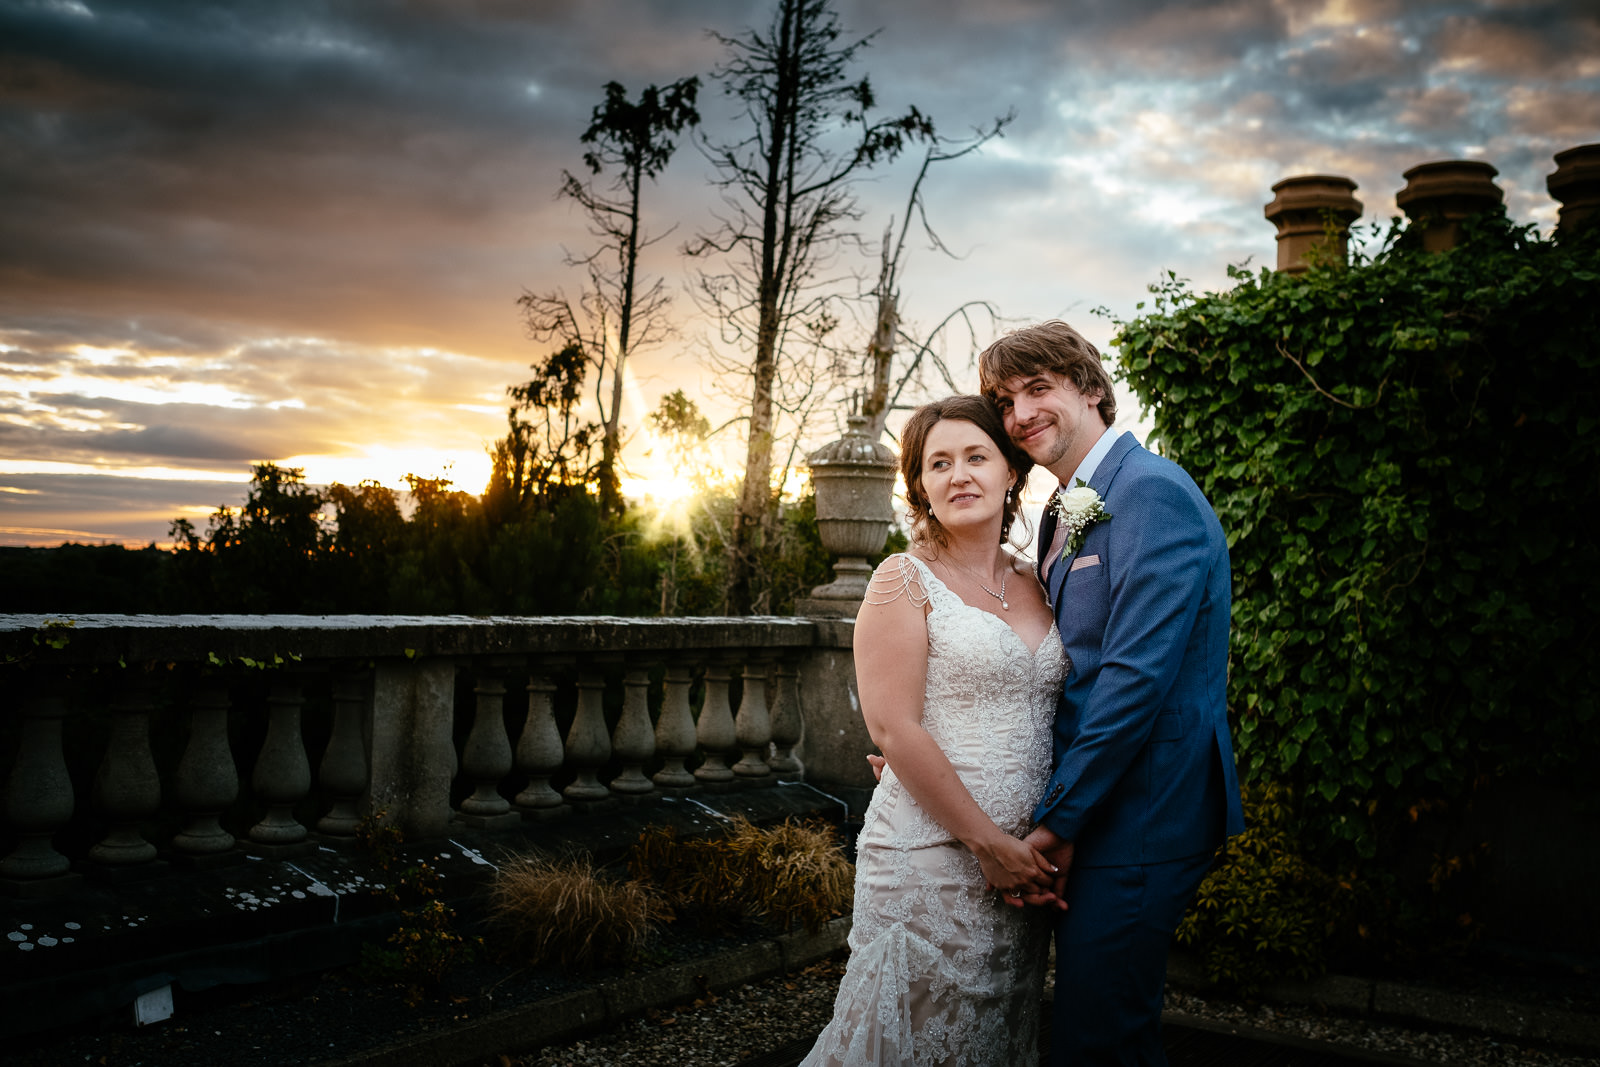 palmerstown estate wedding photographer kildare 1201